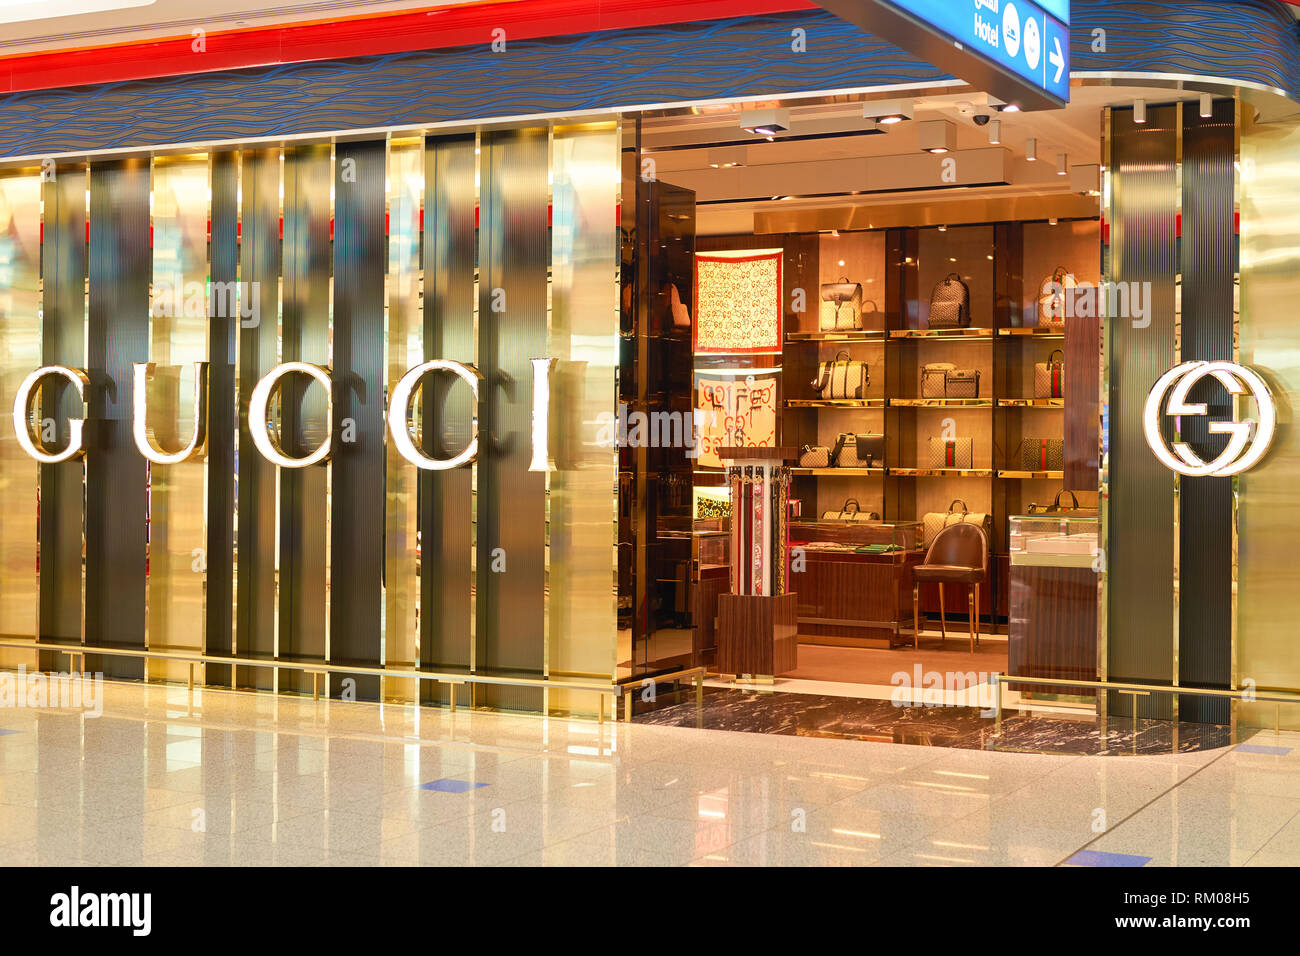 93d77d500a9 Gucci Brand Stock Photos   Gucci Brand Stock Images - Page 3 - Alamy